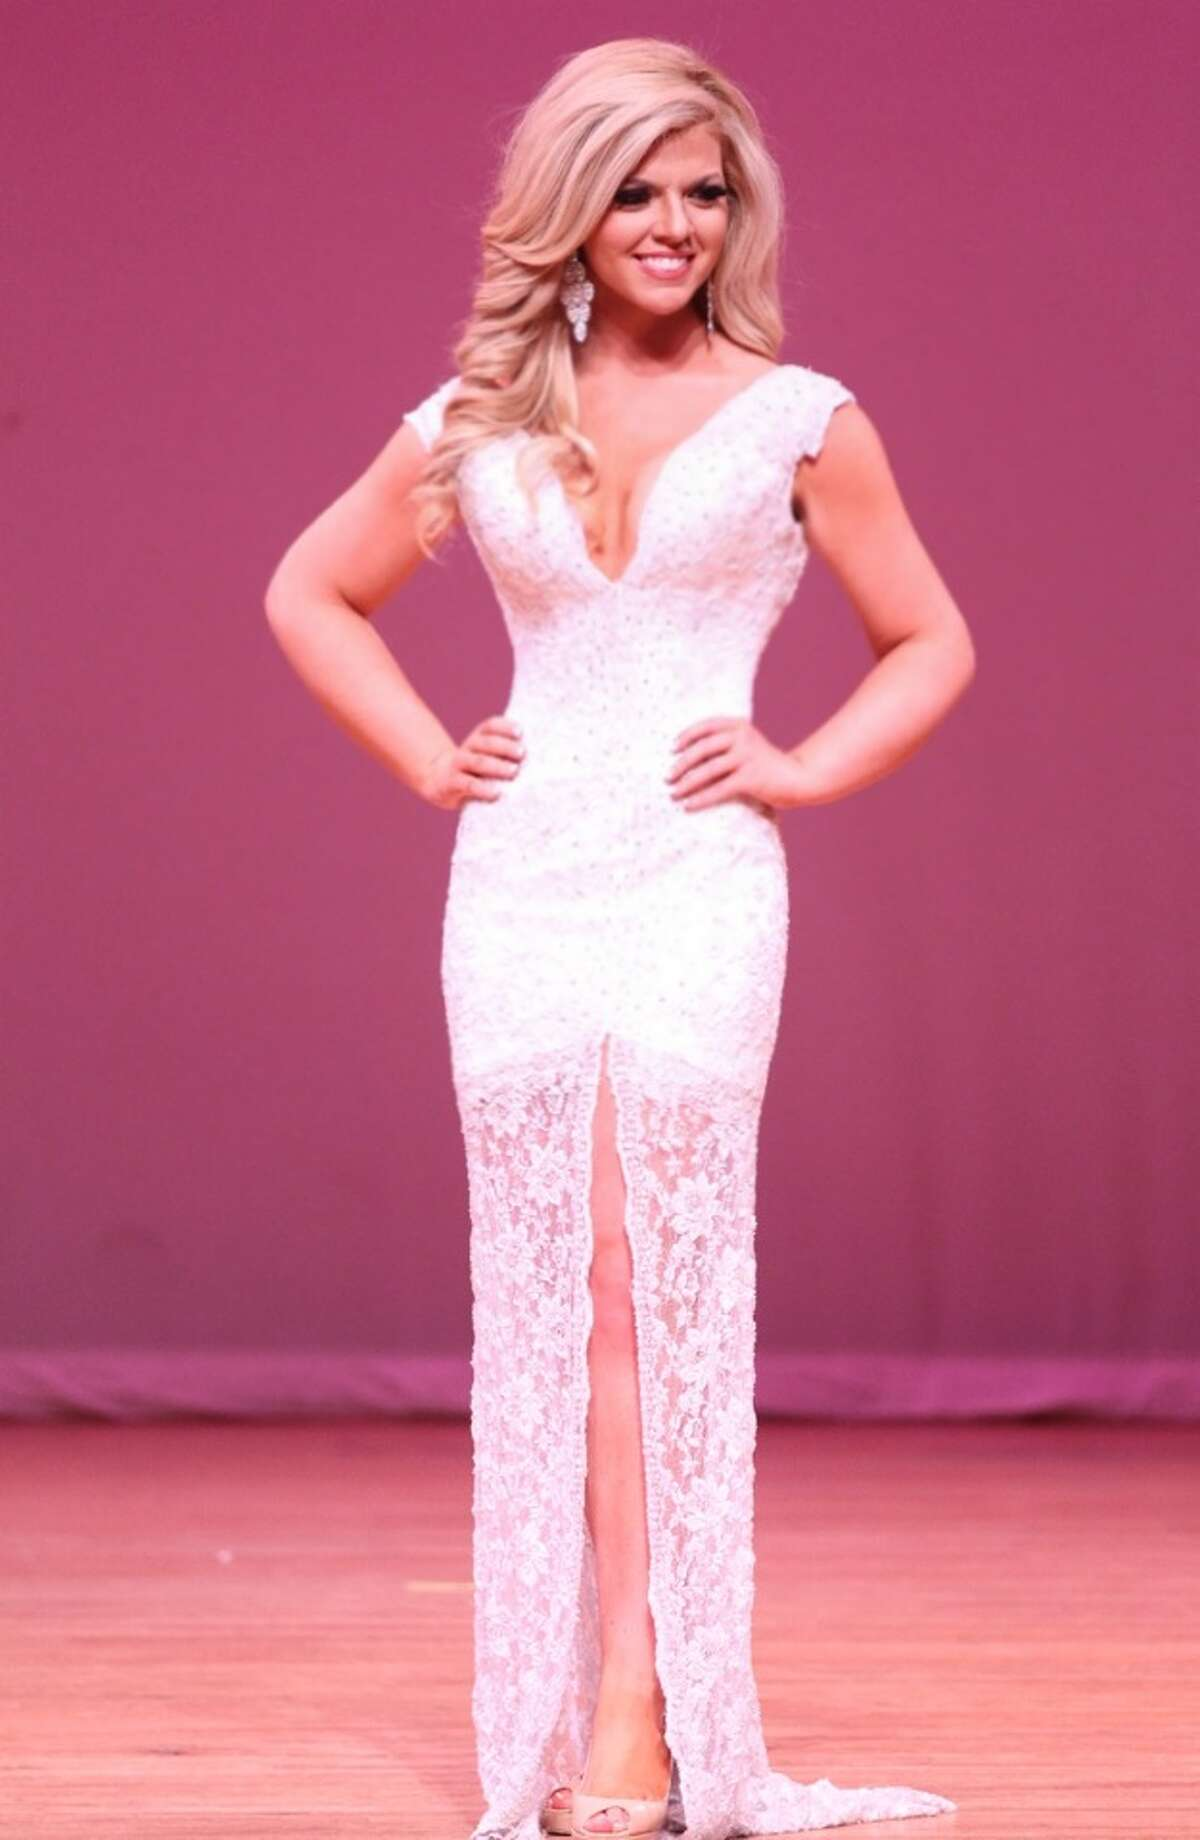 Miss South Texas Keli Kryfko lost 100 pounds to transform herself from an overweight teenager into a Texas pageant queen.